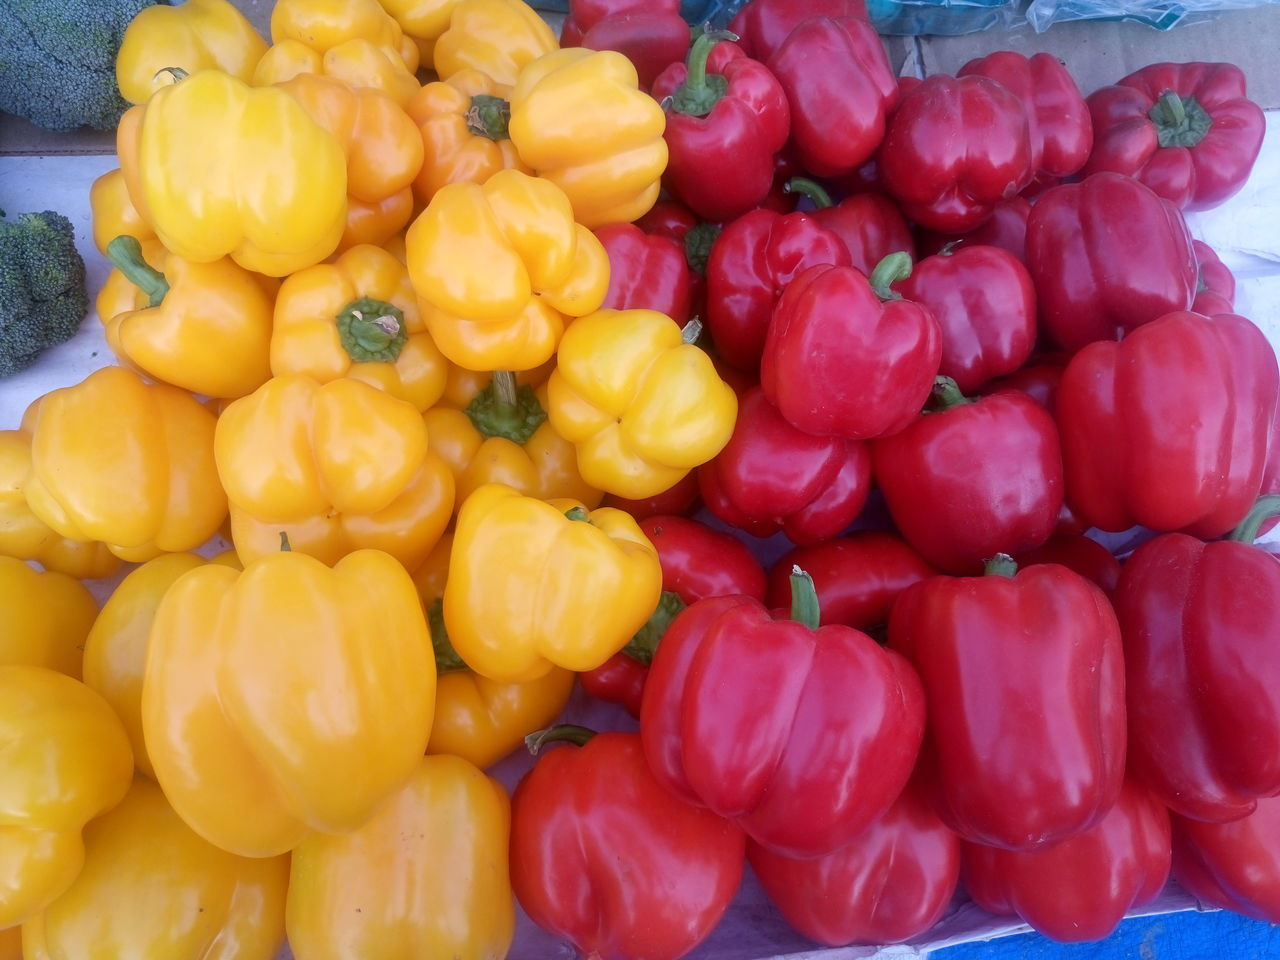 Abundance Bell Pepper Close-up Day Food Food And Drink For Sale Freshness Healthy Eating Large Group Of Objects Market Market Stall No People Outdoors Red Bell Pepper Retail  Vegetable Yellow Bell Pepper